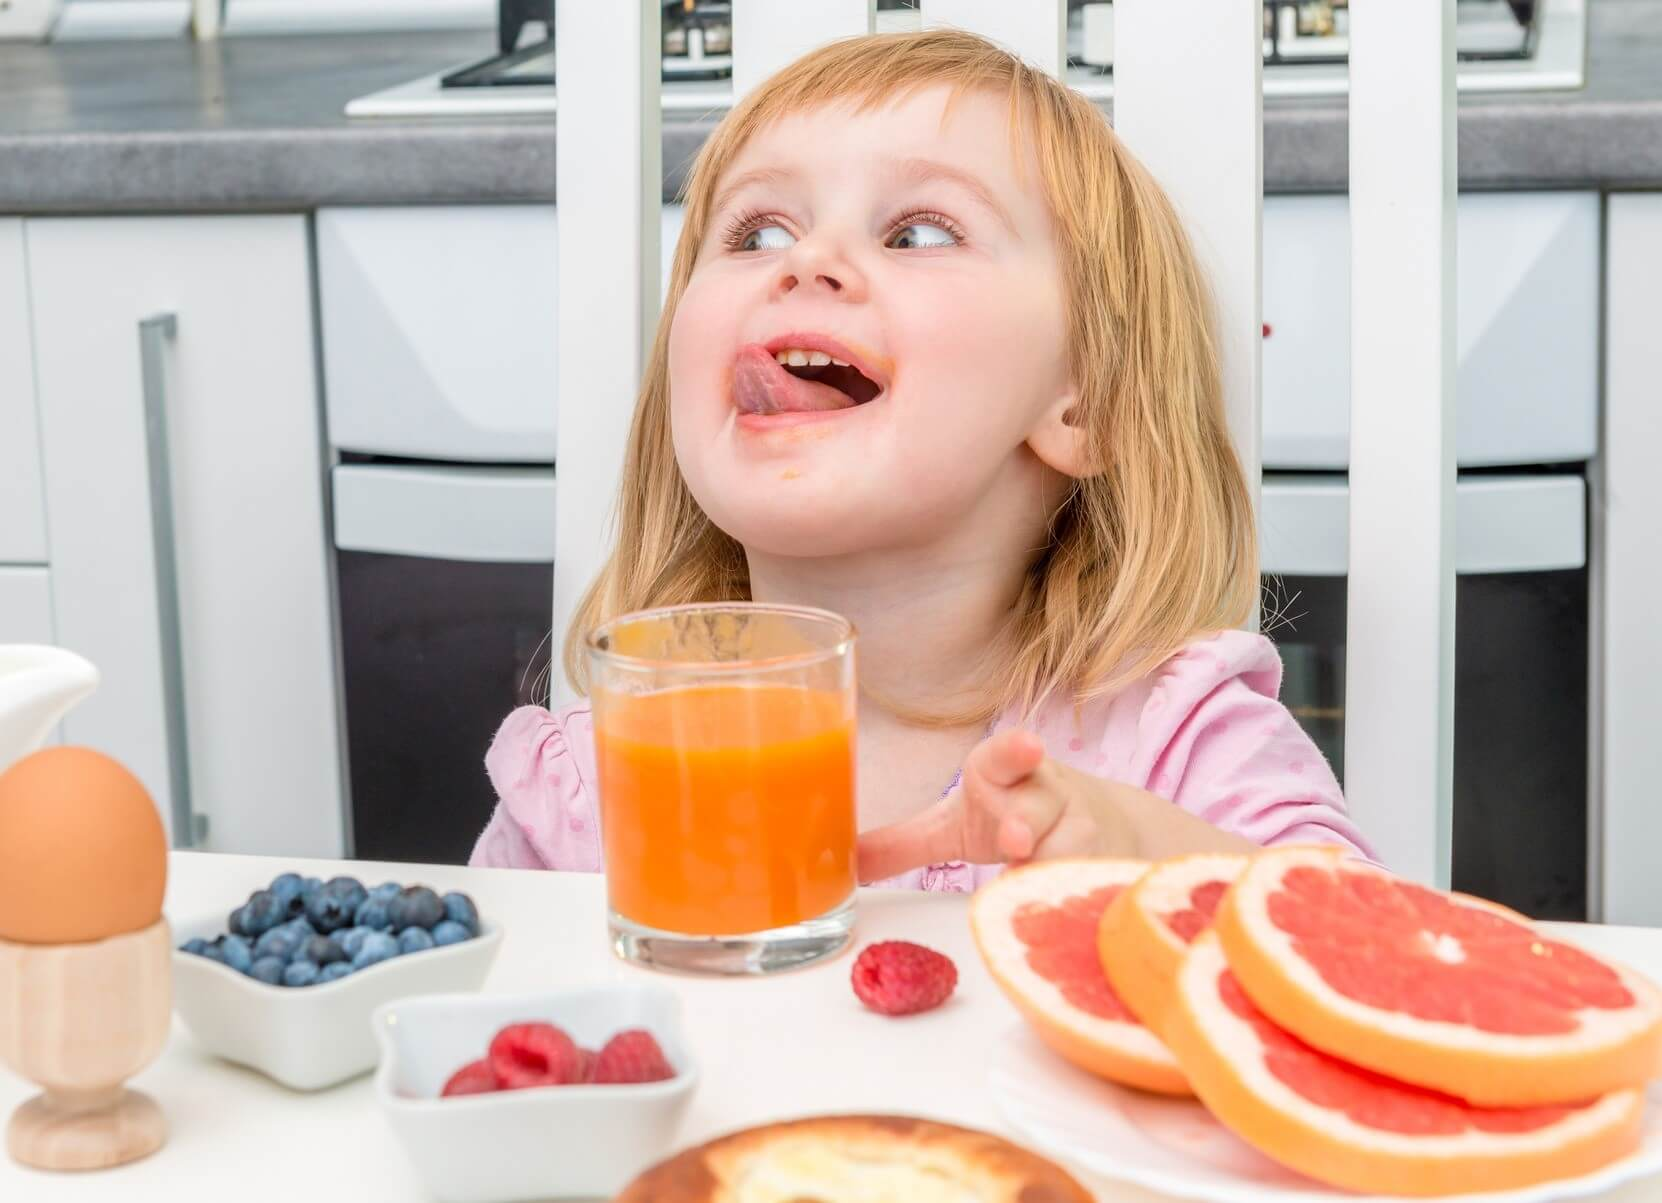 http://redwoodpd.com/wp-content/uploads/2015/12/Fruit-juice-can-damage-your-teeth.jpg